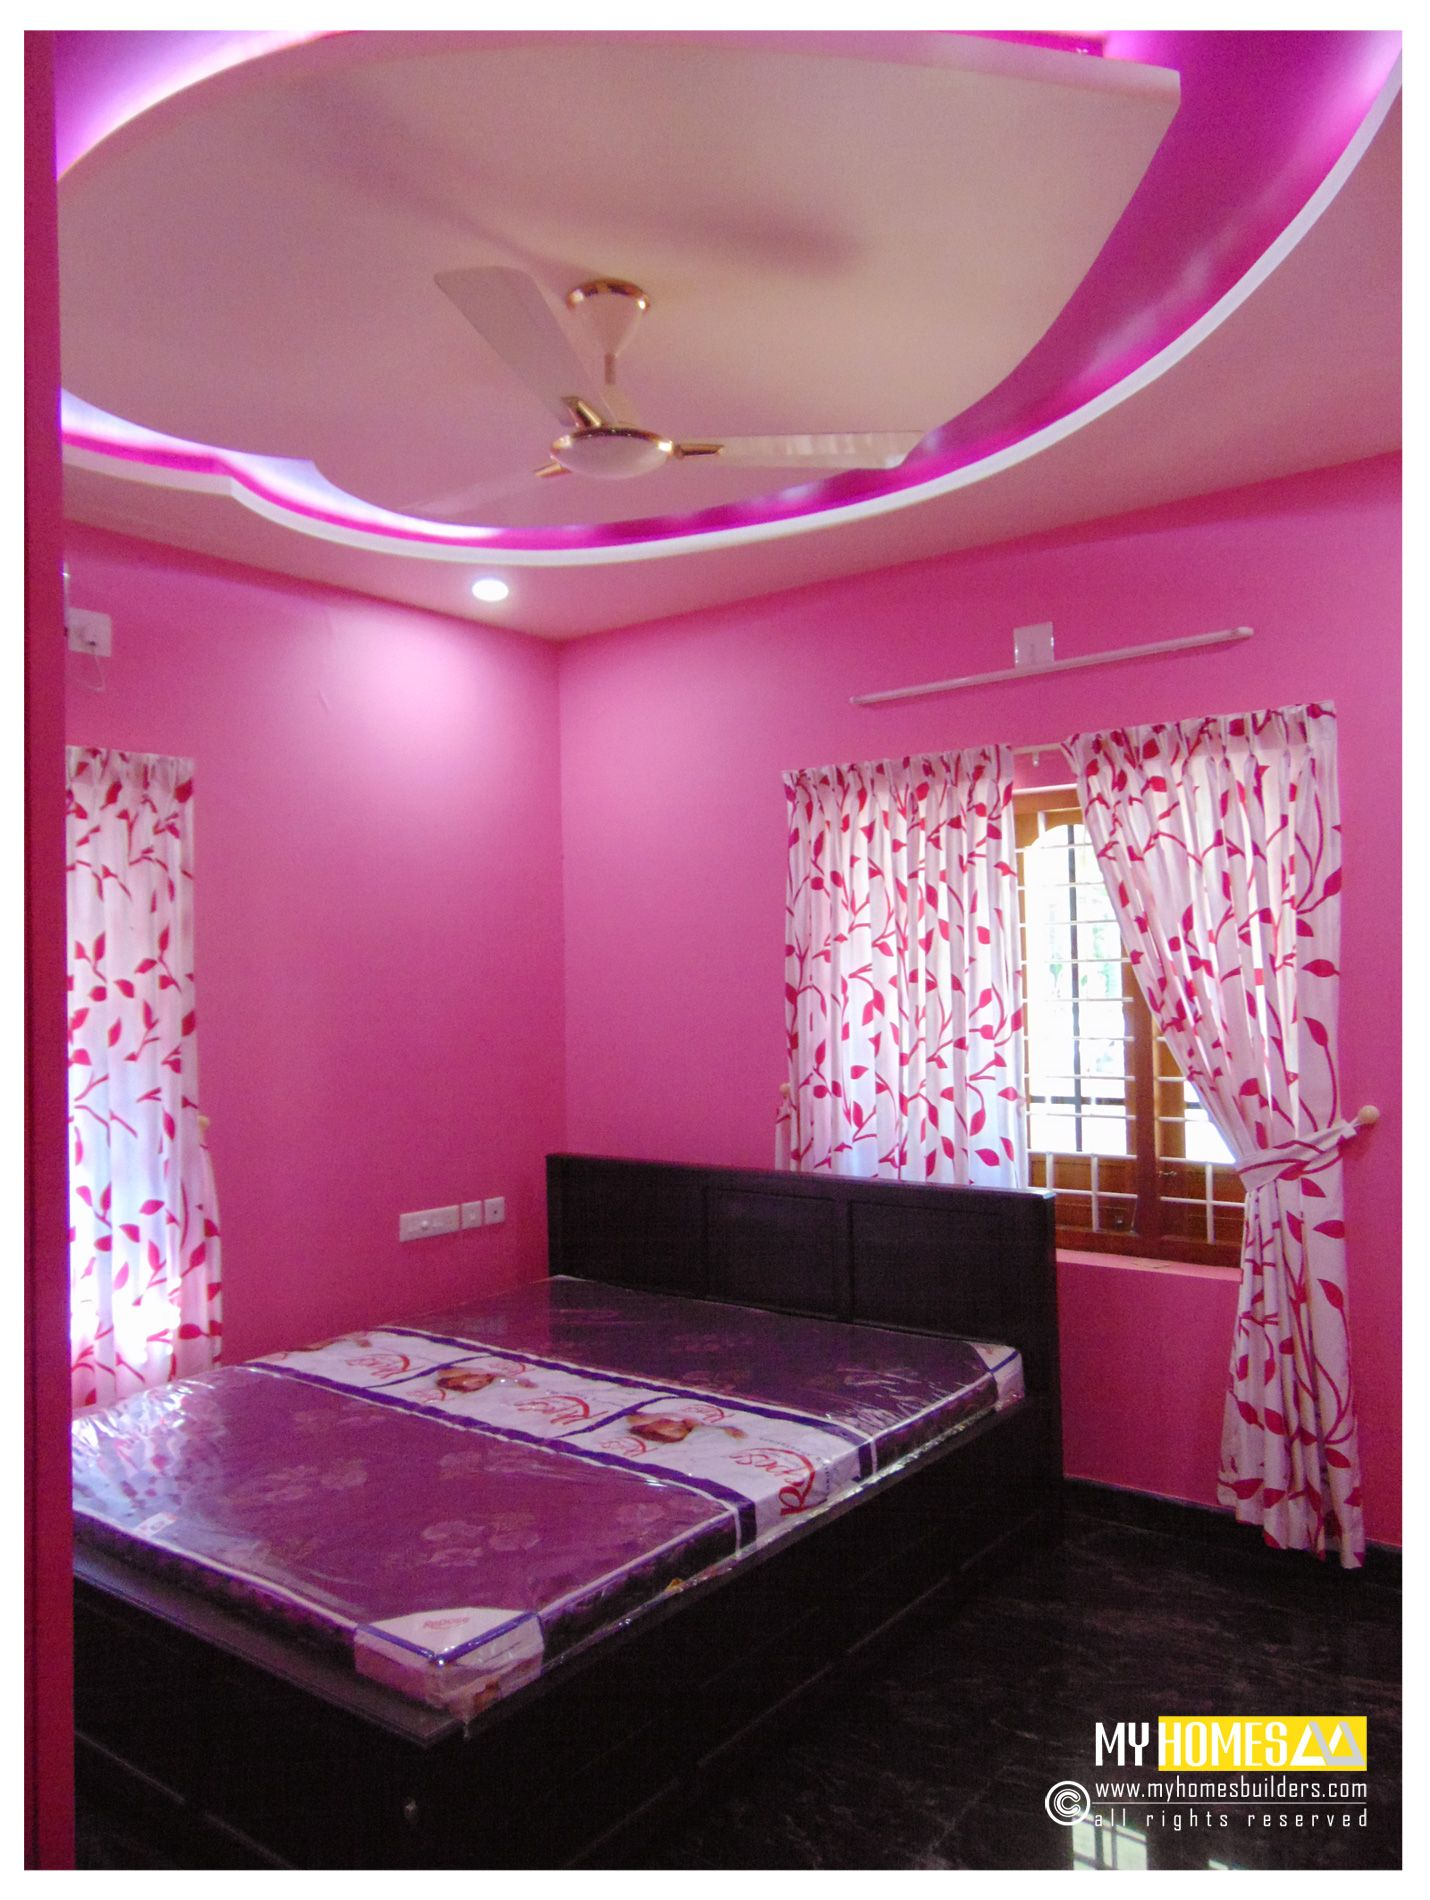 Kerala bedroom interior designs best bed room interior for Simple interior designs for small house